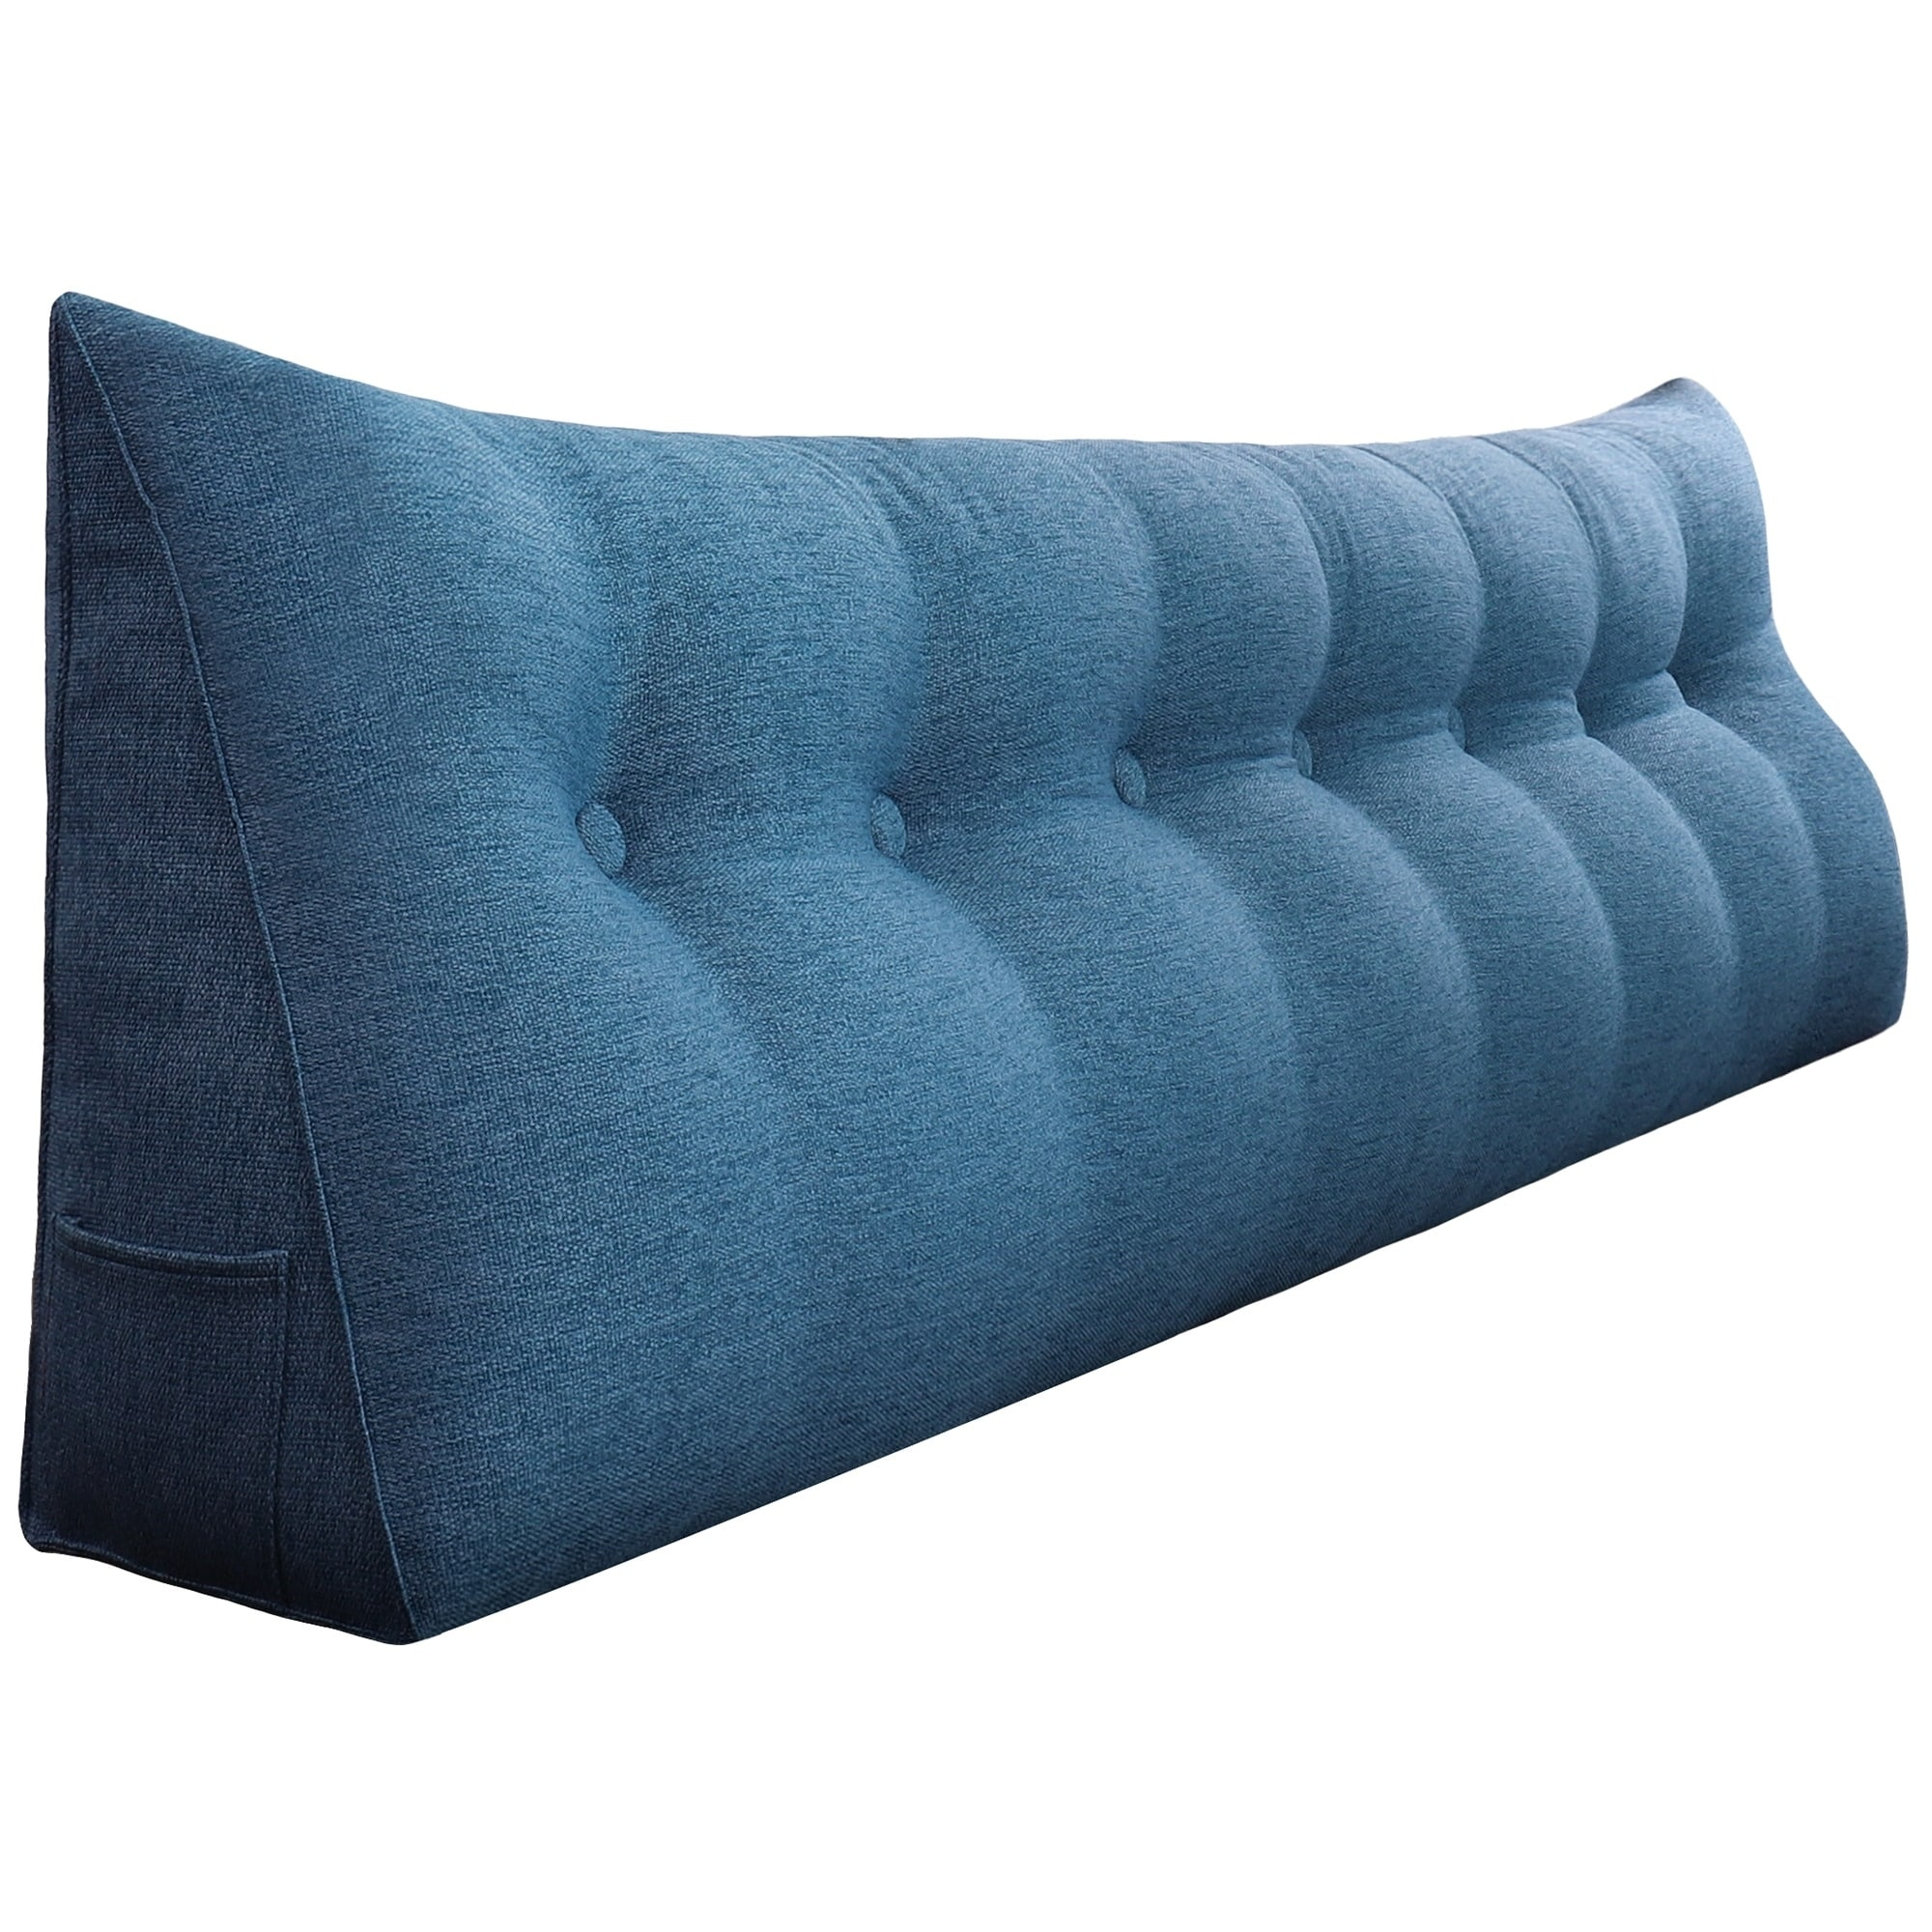 Picture of: Shop Wowmax Bed Rest Wedge Pillow Oversized Extra Long Back Lumbar Pillow Overstock 30994608